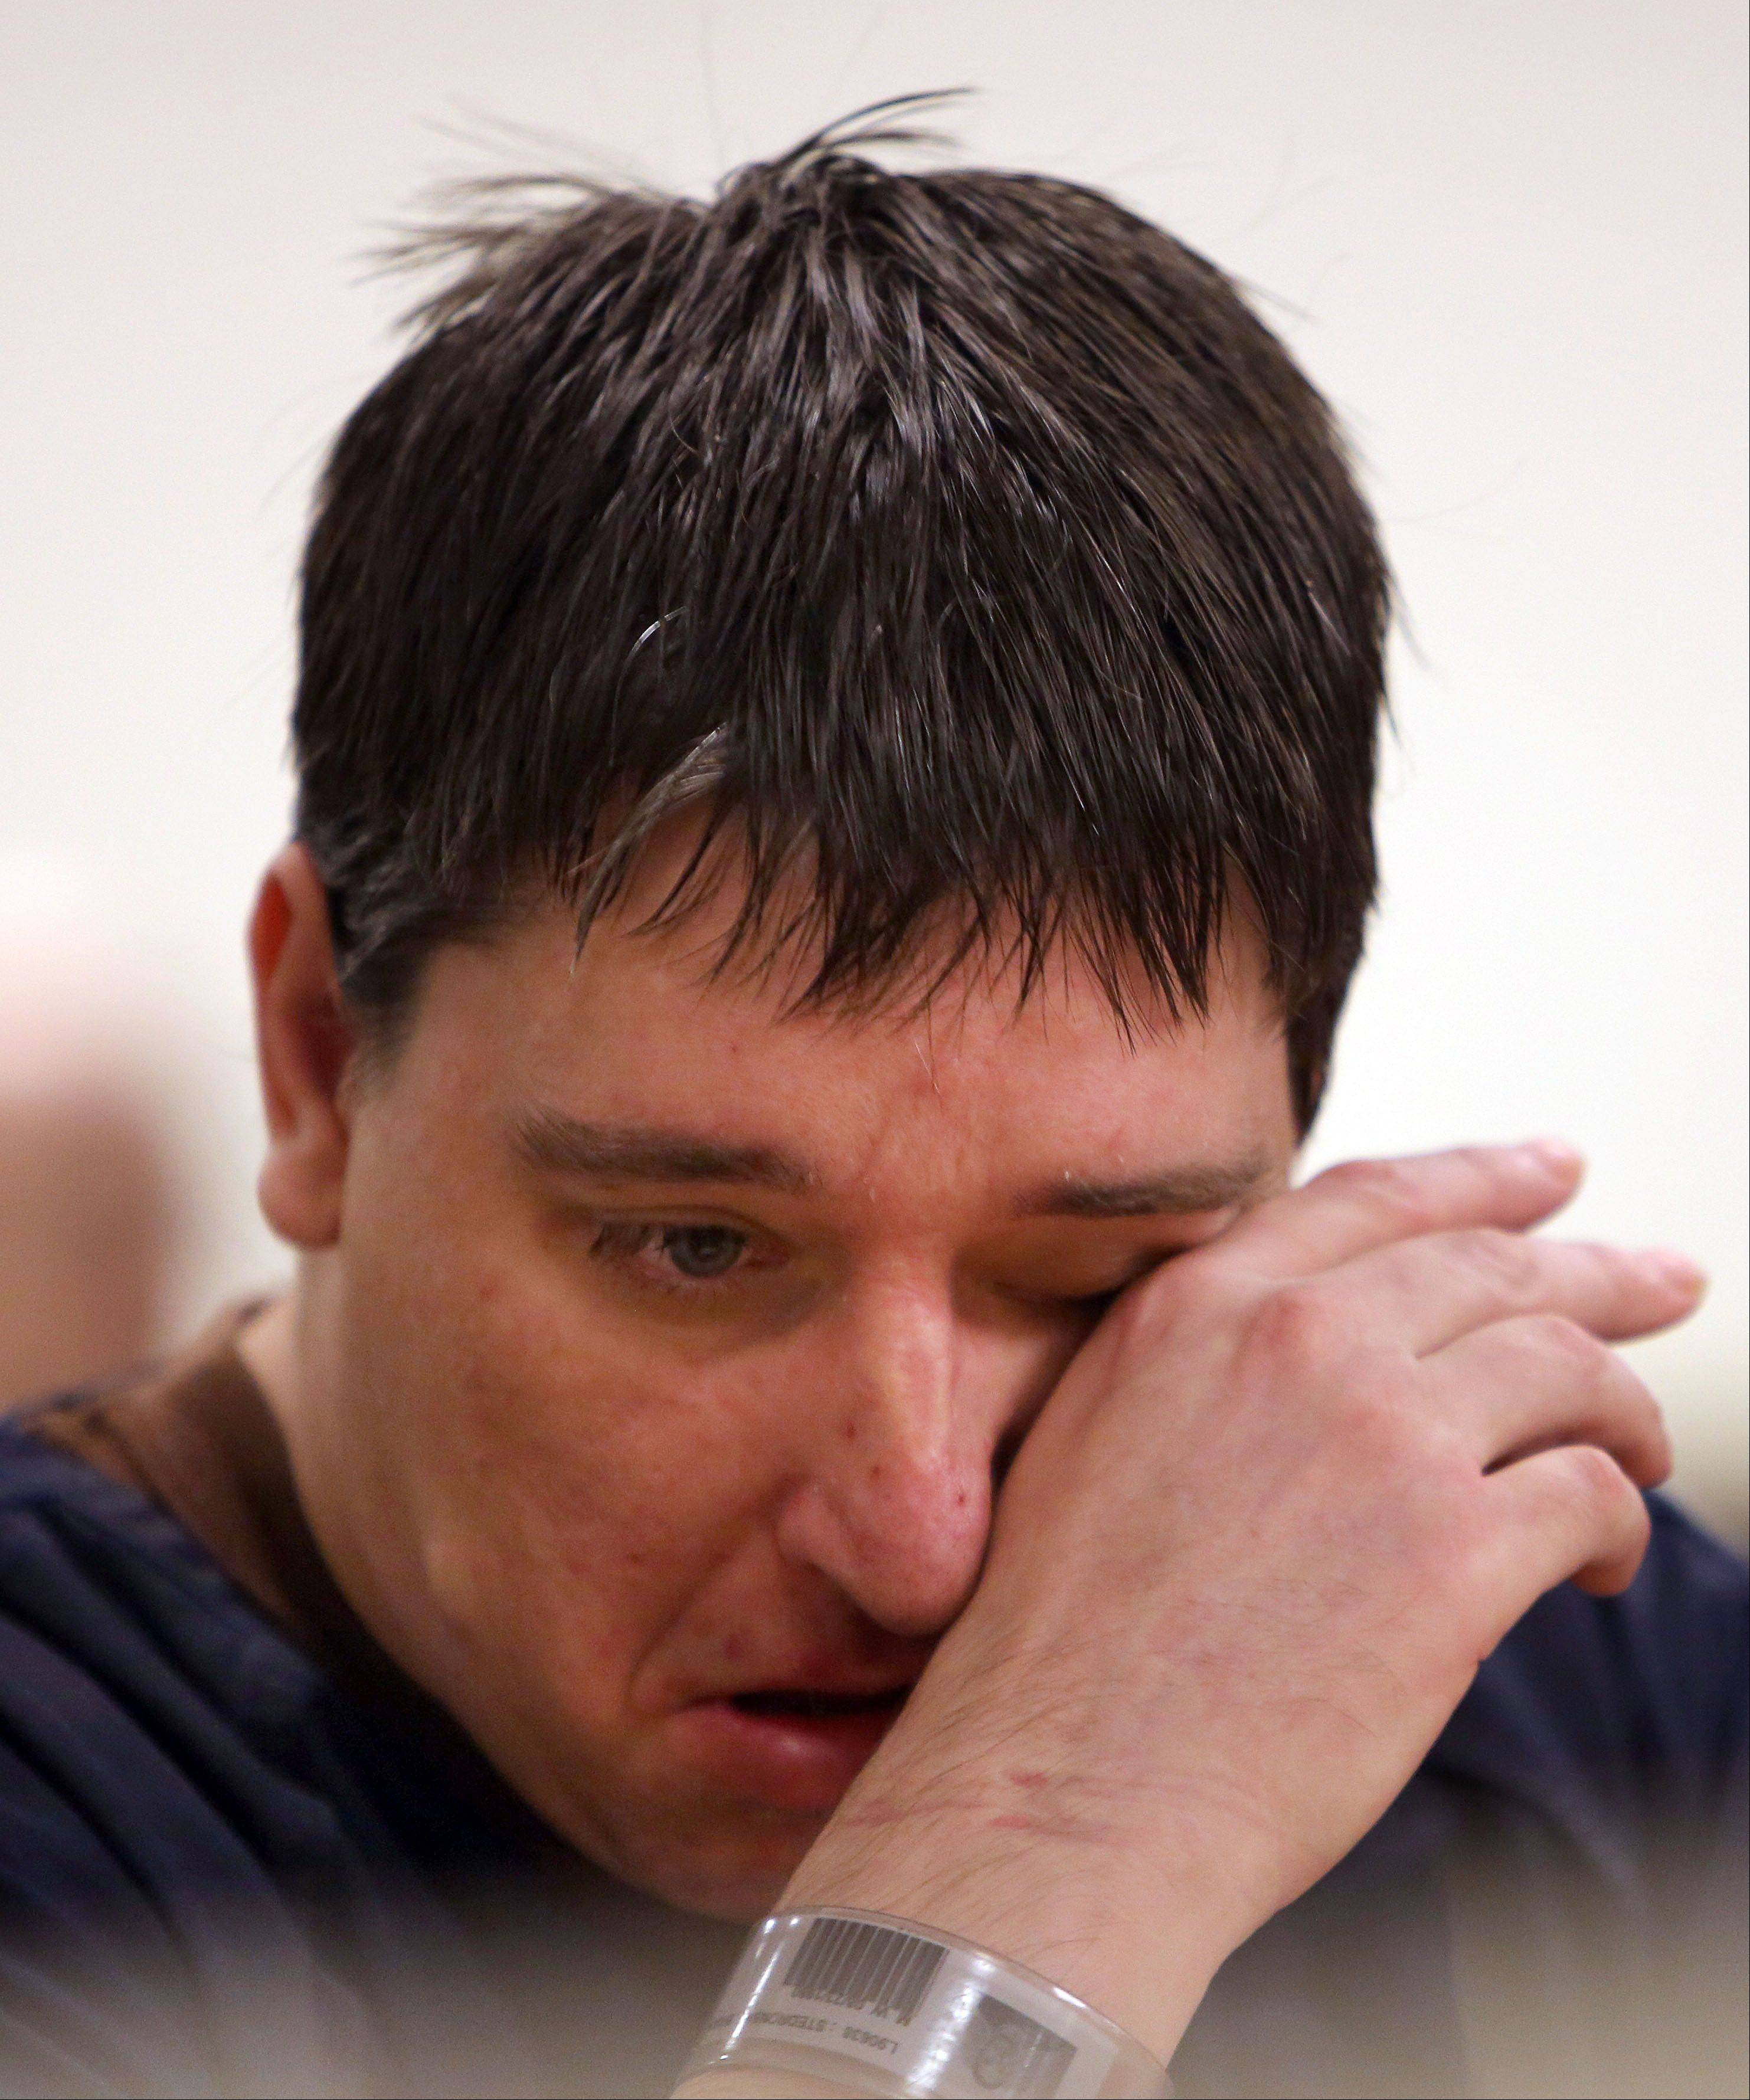 Brian Stedronsky, 33, of Ingleside, cries as victim impact statements are read Wednesday during his sentencing hearing in Waukegan. Stedronsky received a six-year prison sentence after pleading guilty to selling a fatal dose of a potent pain medication to his friend, Jeffrey Ferris, in 2012.